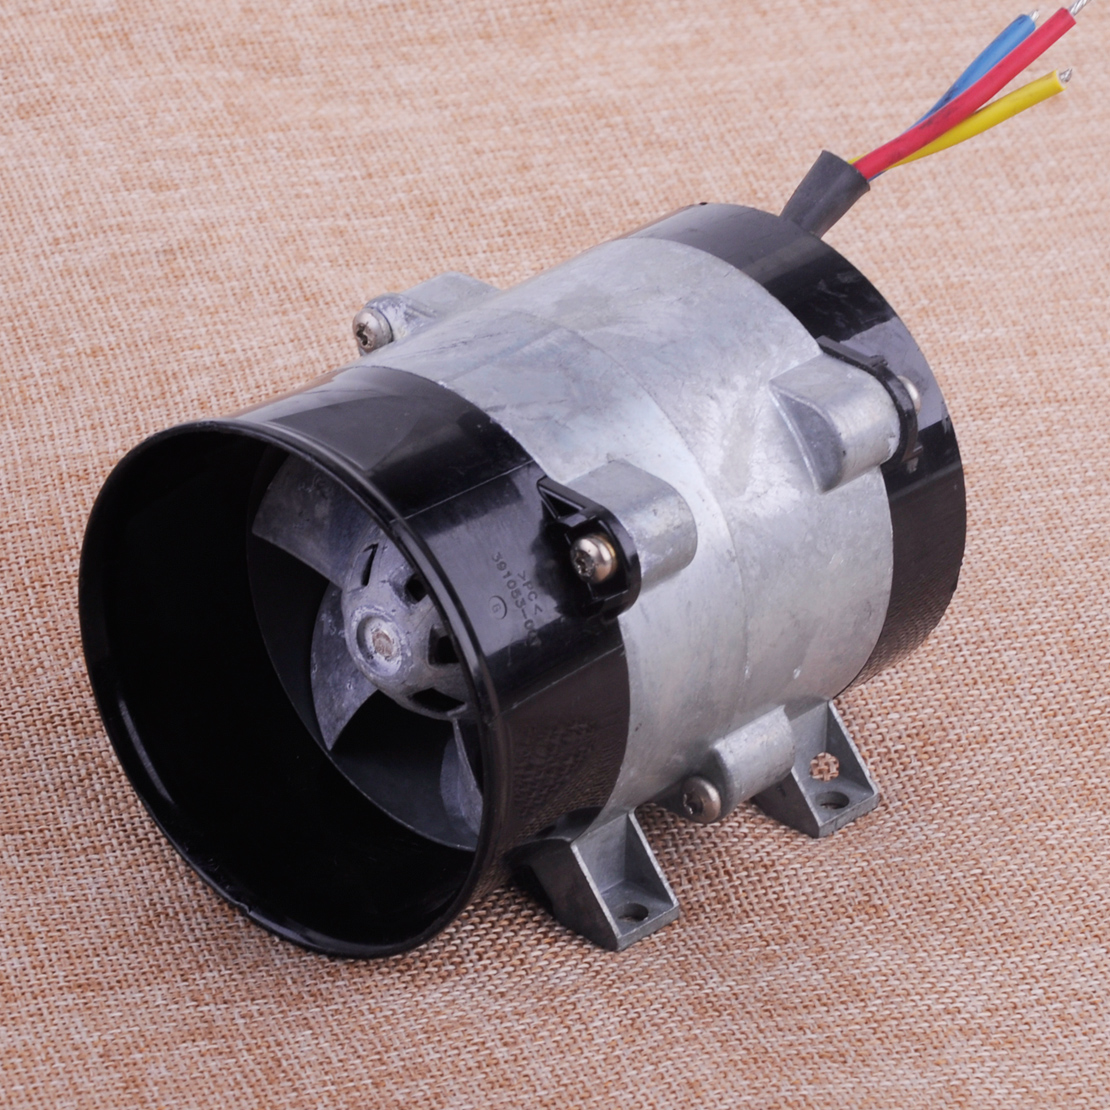 CITALL Car Auto High Speed Electric Turbine Power Turbo Charger Tan Boost Air Intake Fan